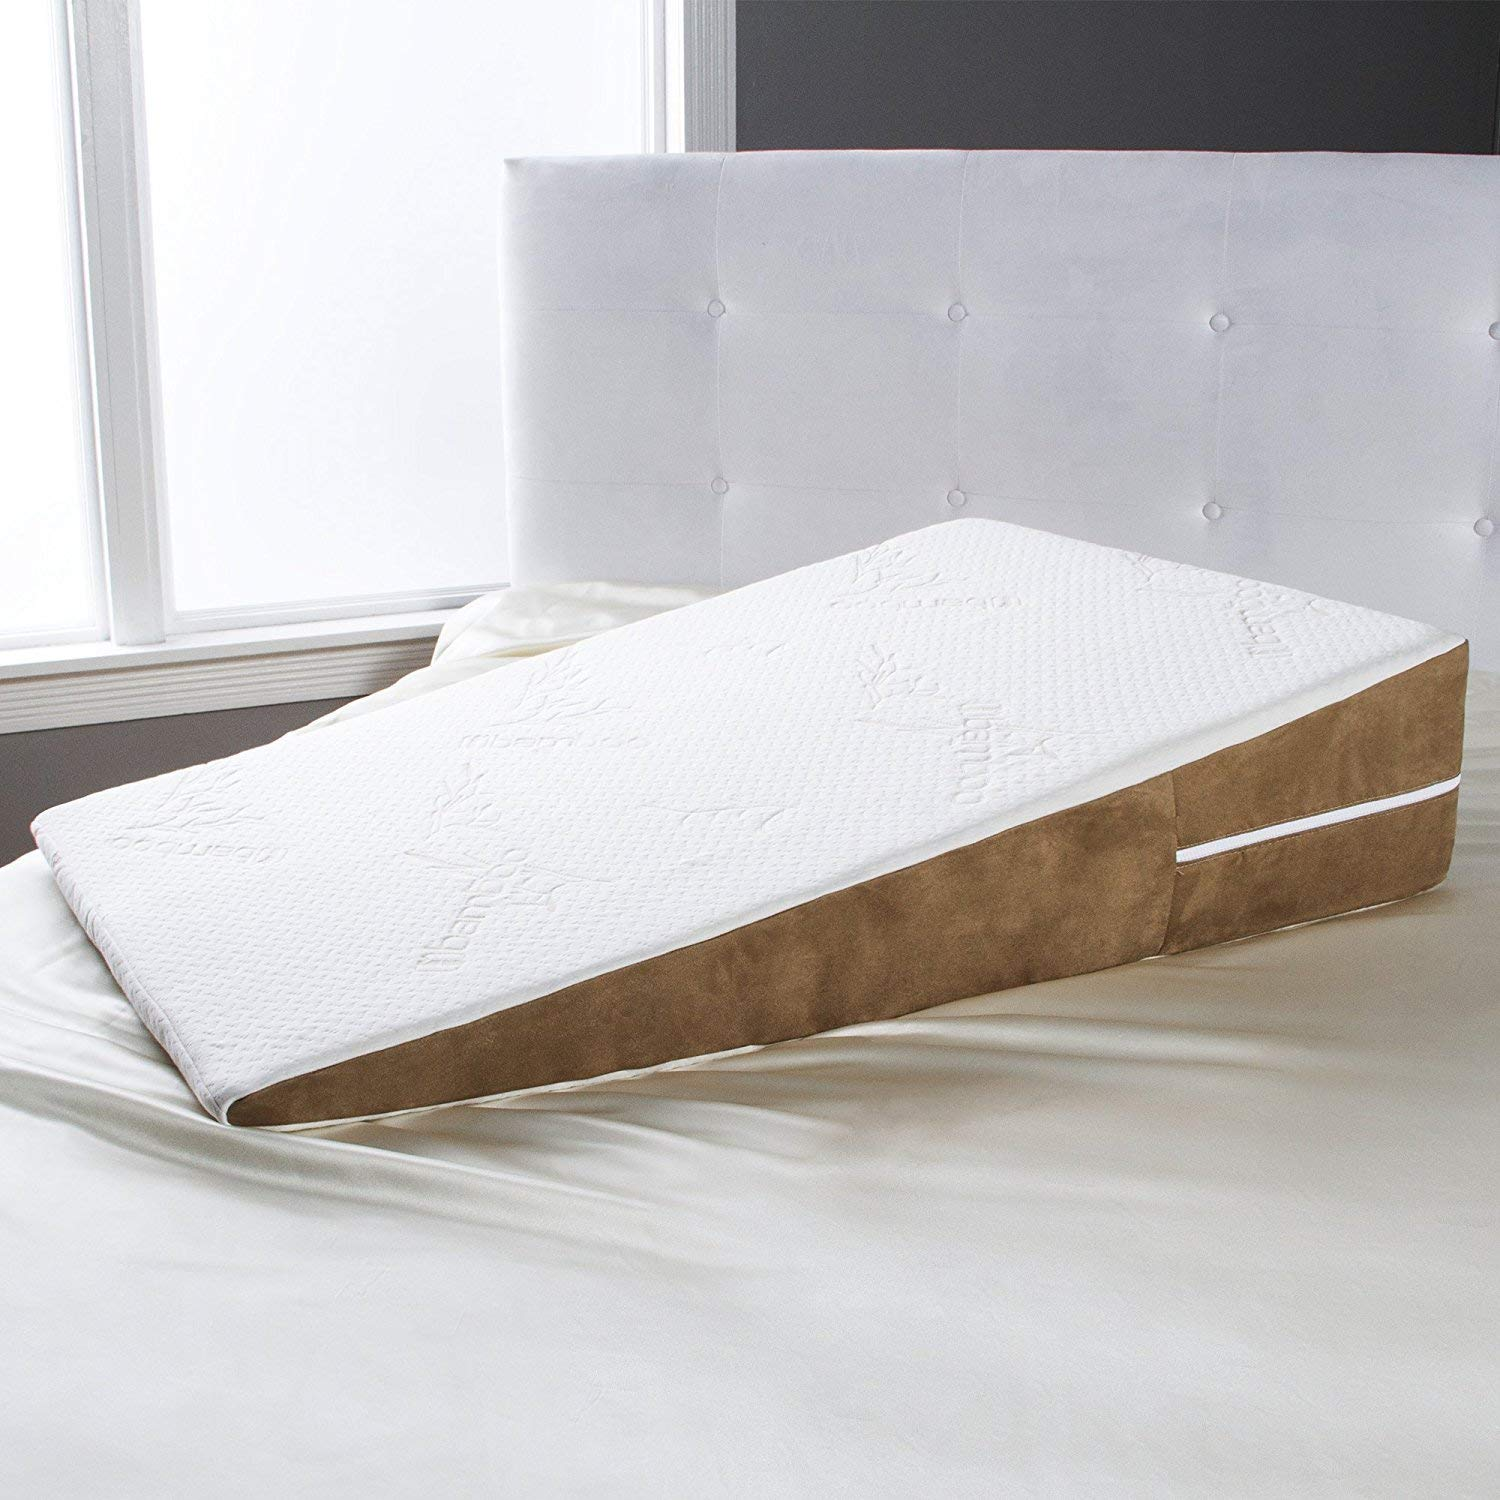 Avana Bed Wedge Memory Foam Pillow with Removable Bamboo Cover, Extra Large by Avana